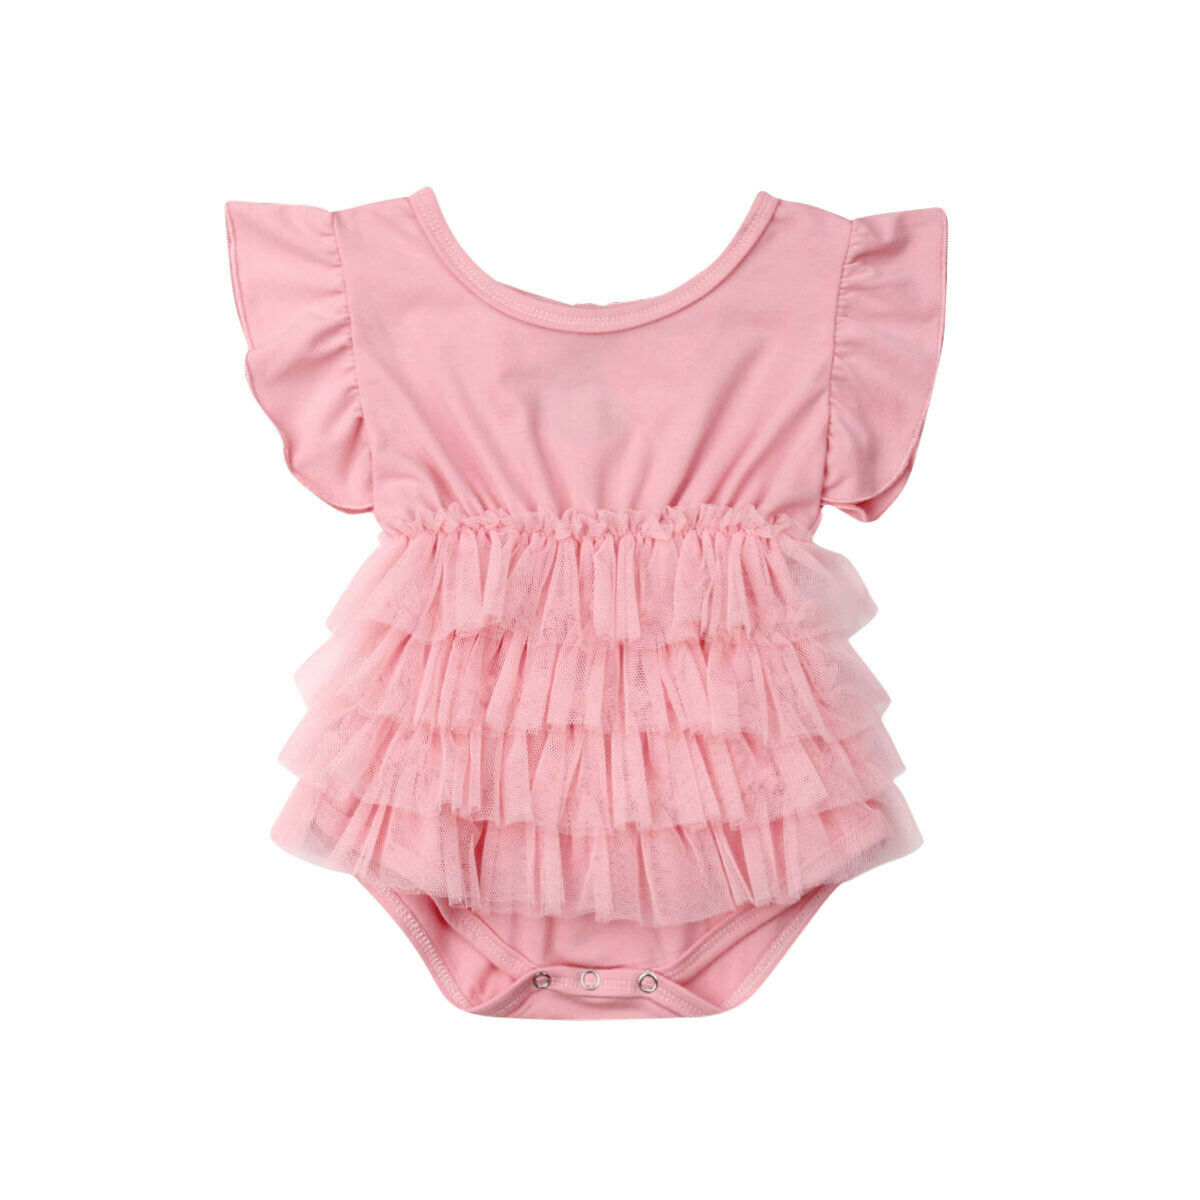 Trucks Rule Newborn Infant Baby Summer Sleeveless Bodysuit Romper Jumpsuits Playsuit